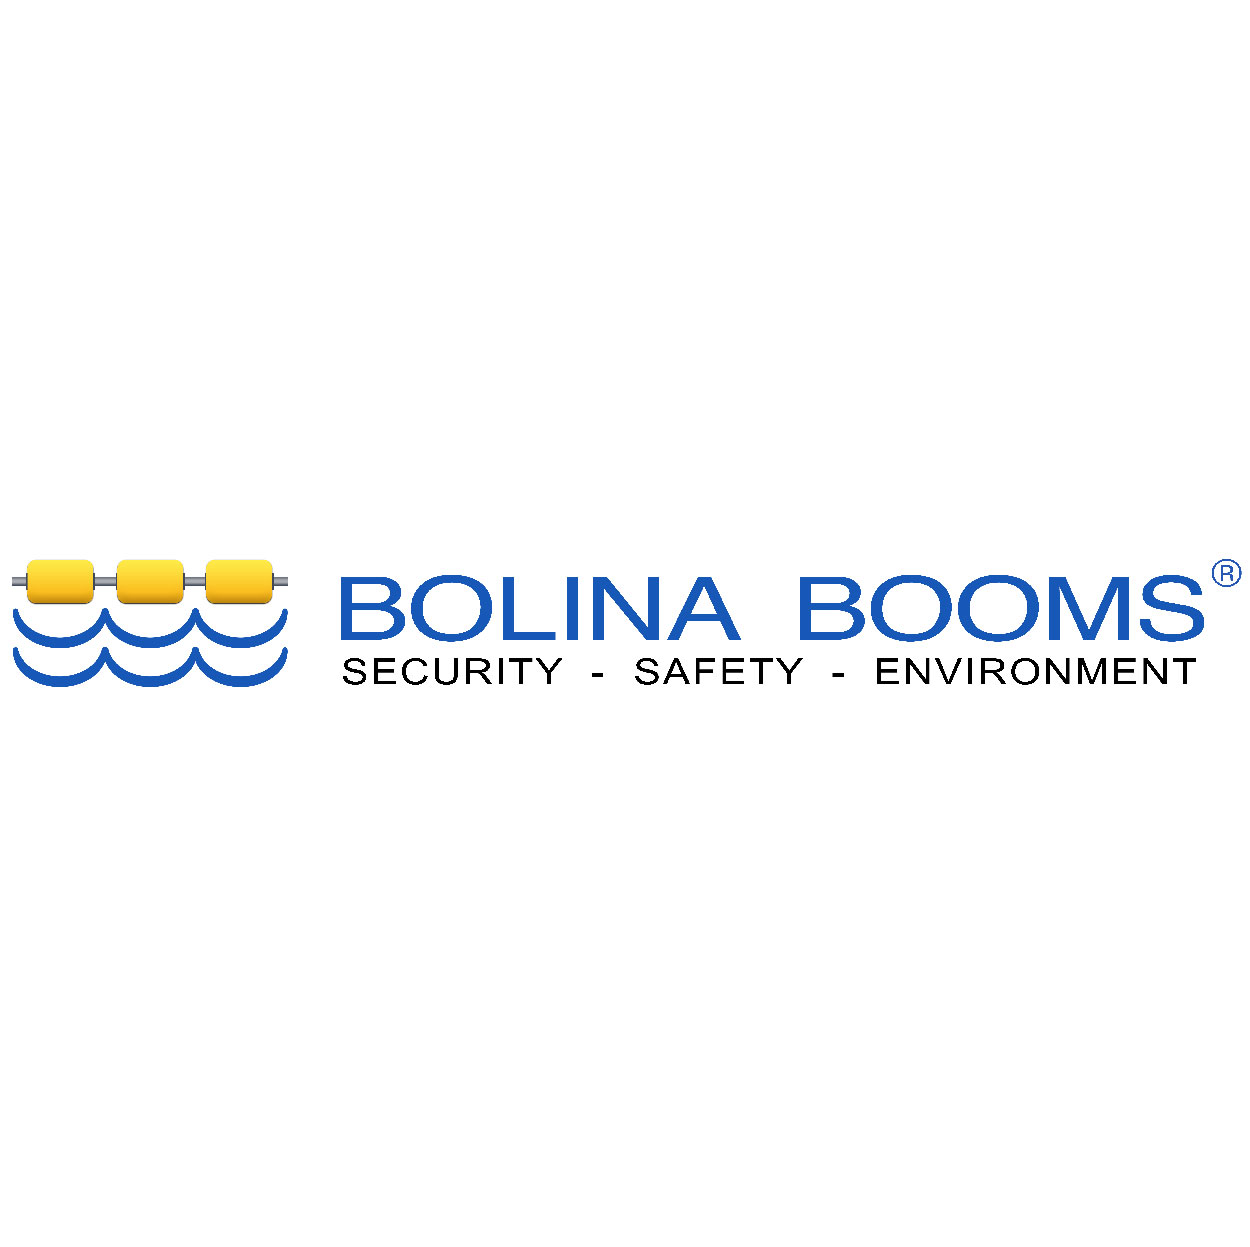 Bolina is an Ecocoast Brand